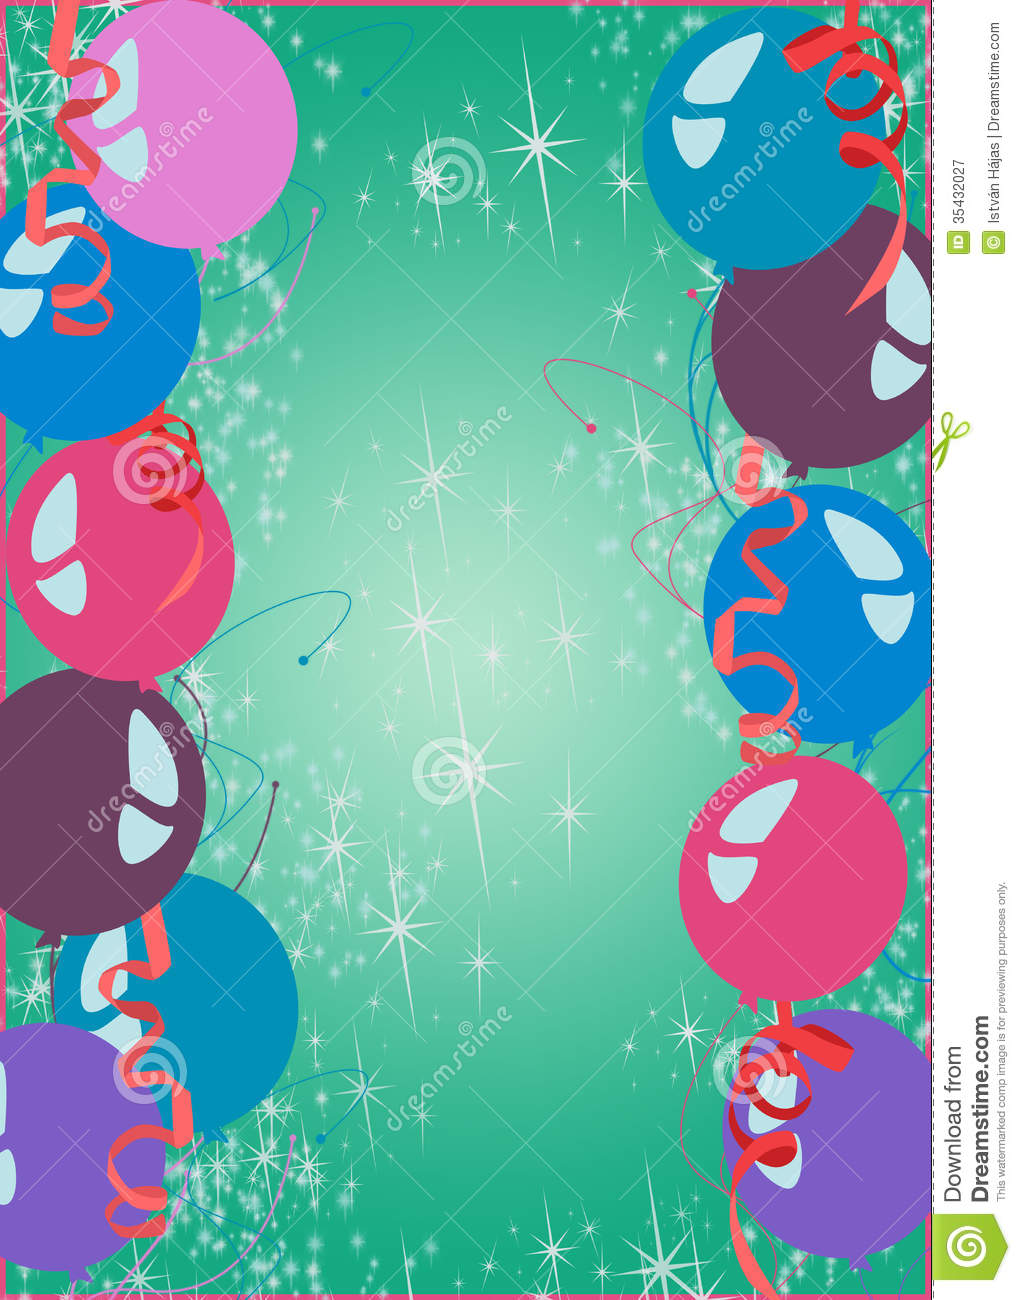 happy new year or birthday party background stock image image of